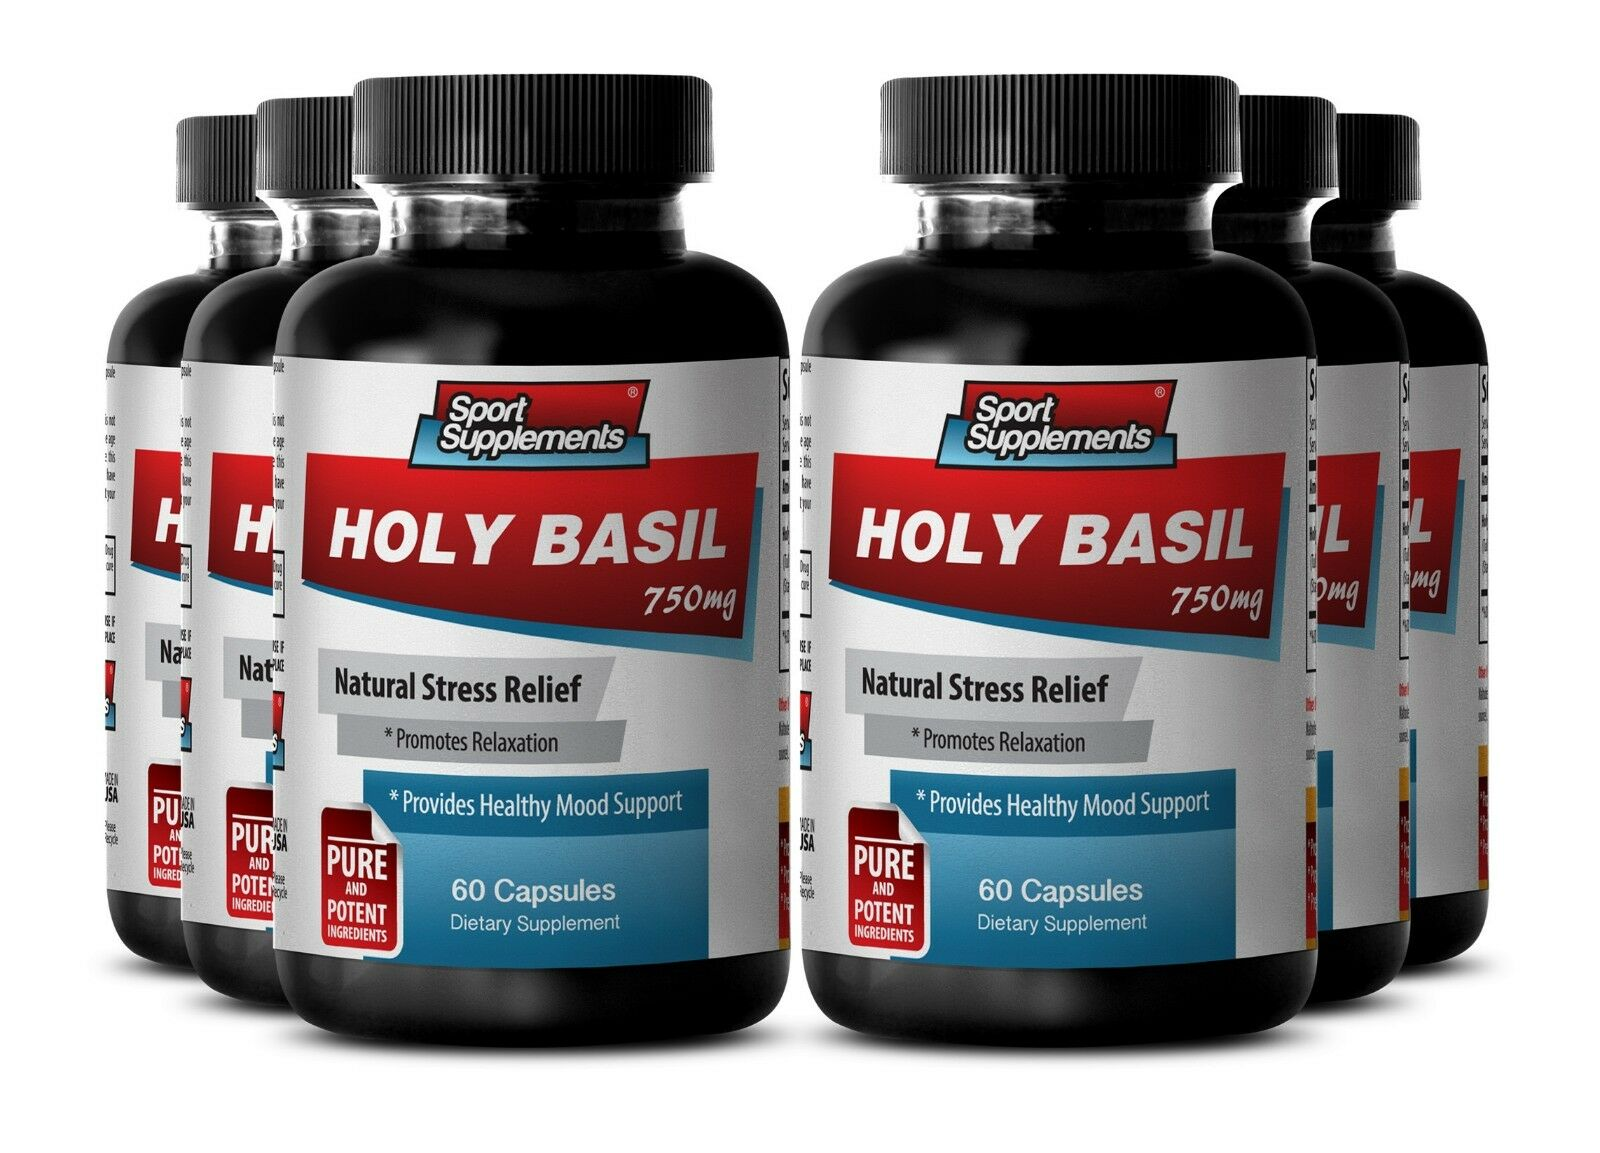 Blood Sugar Support - Holy Basil Extract 750mg - Natural Stress Relief  6B